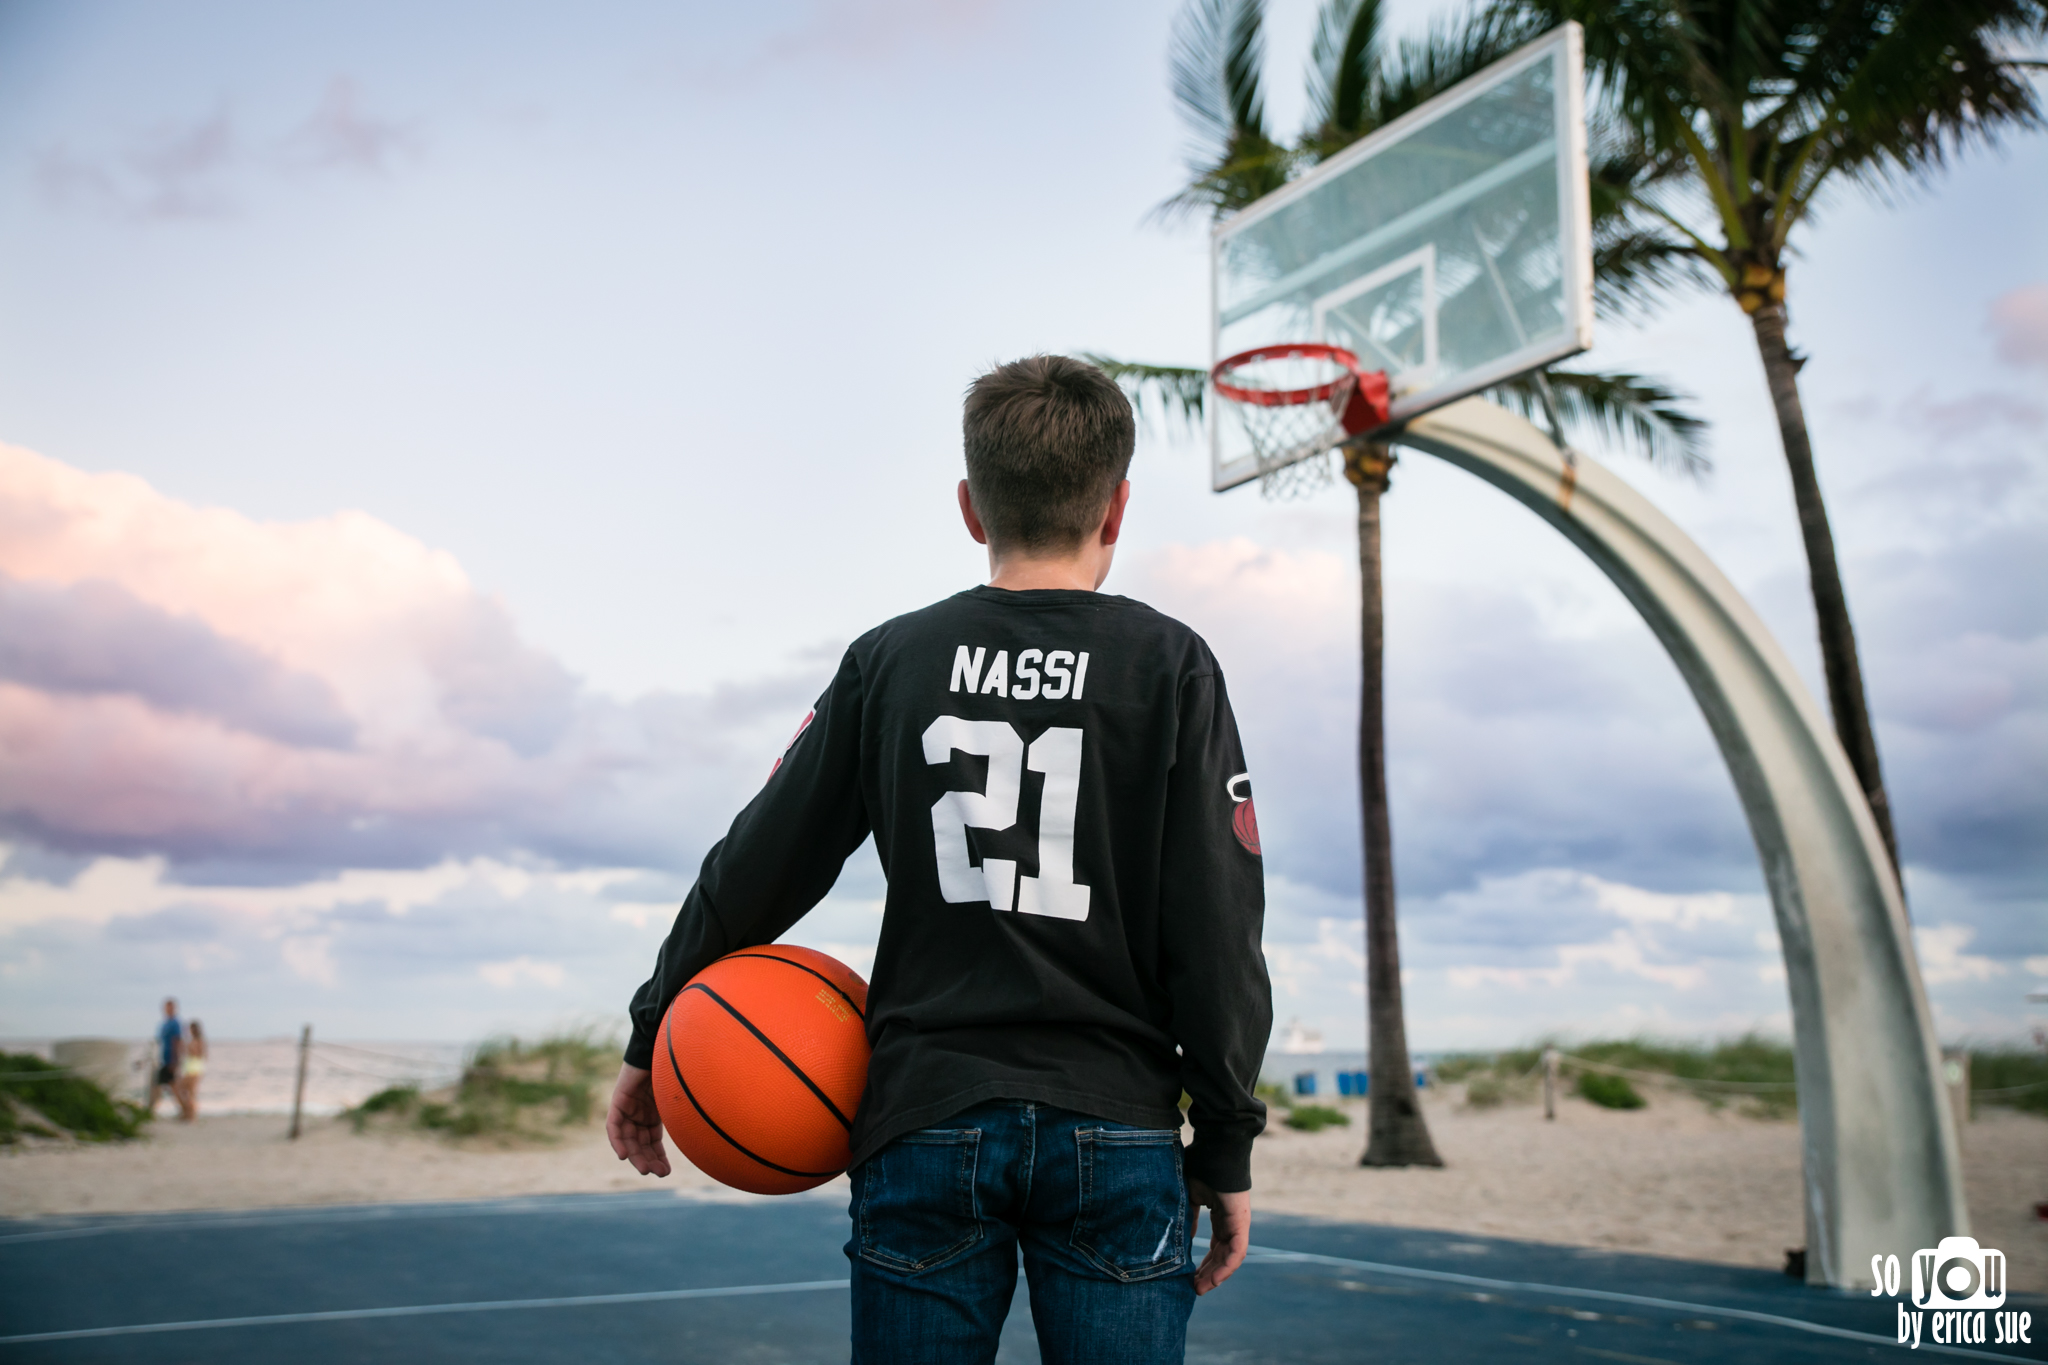 bar-mitzvay-pre-shoot-family-photography-so-you-by-erica-sue-ft-lauderdale-fl-florida-beach-9236.jpg